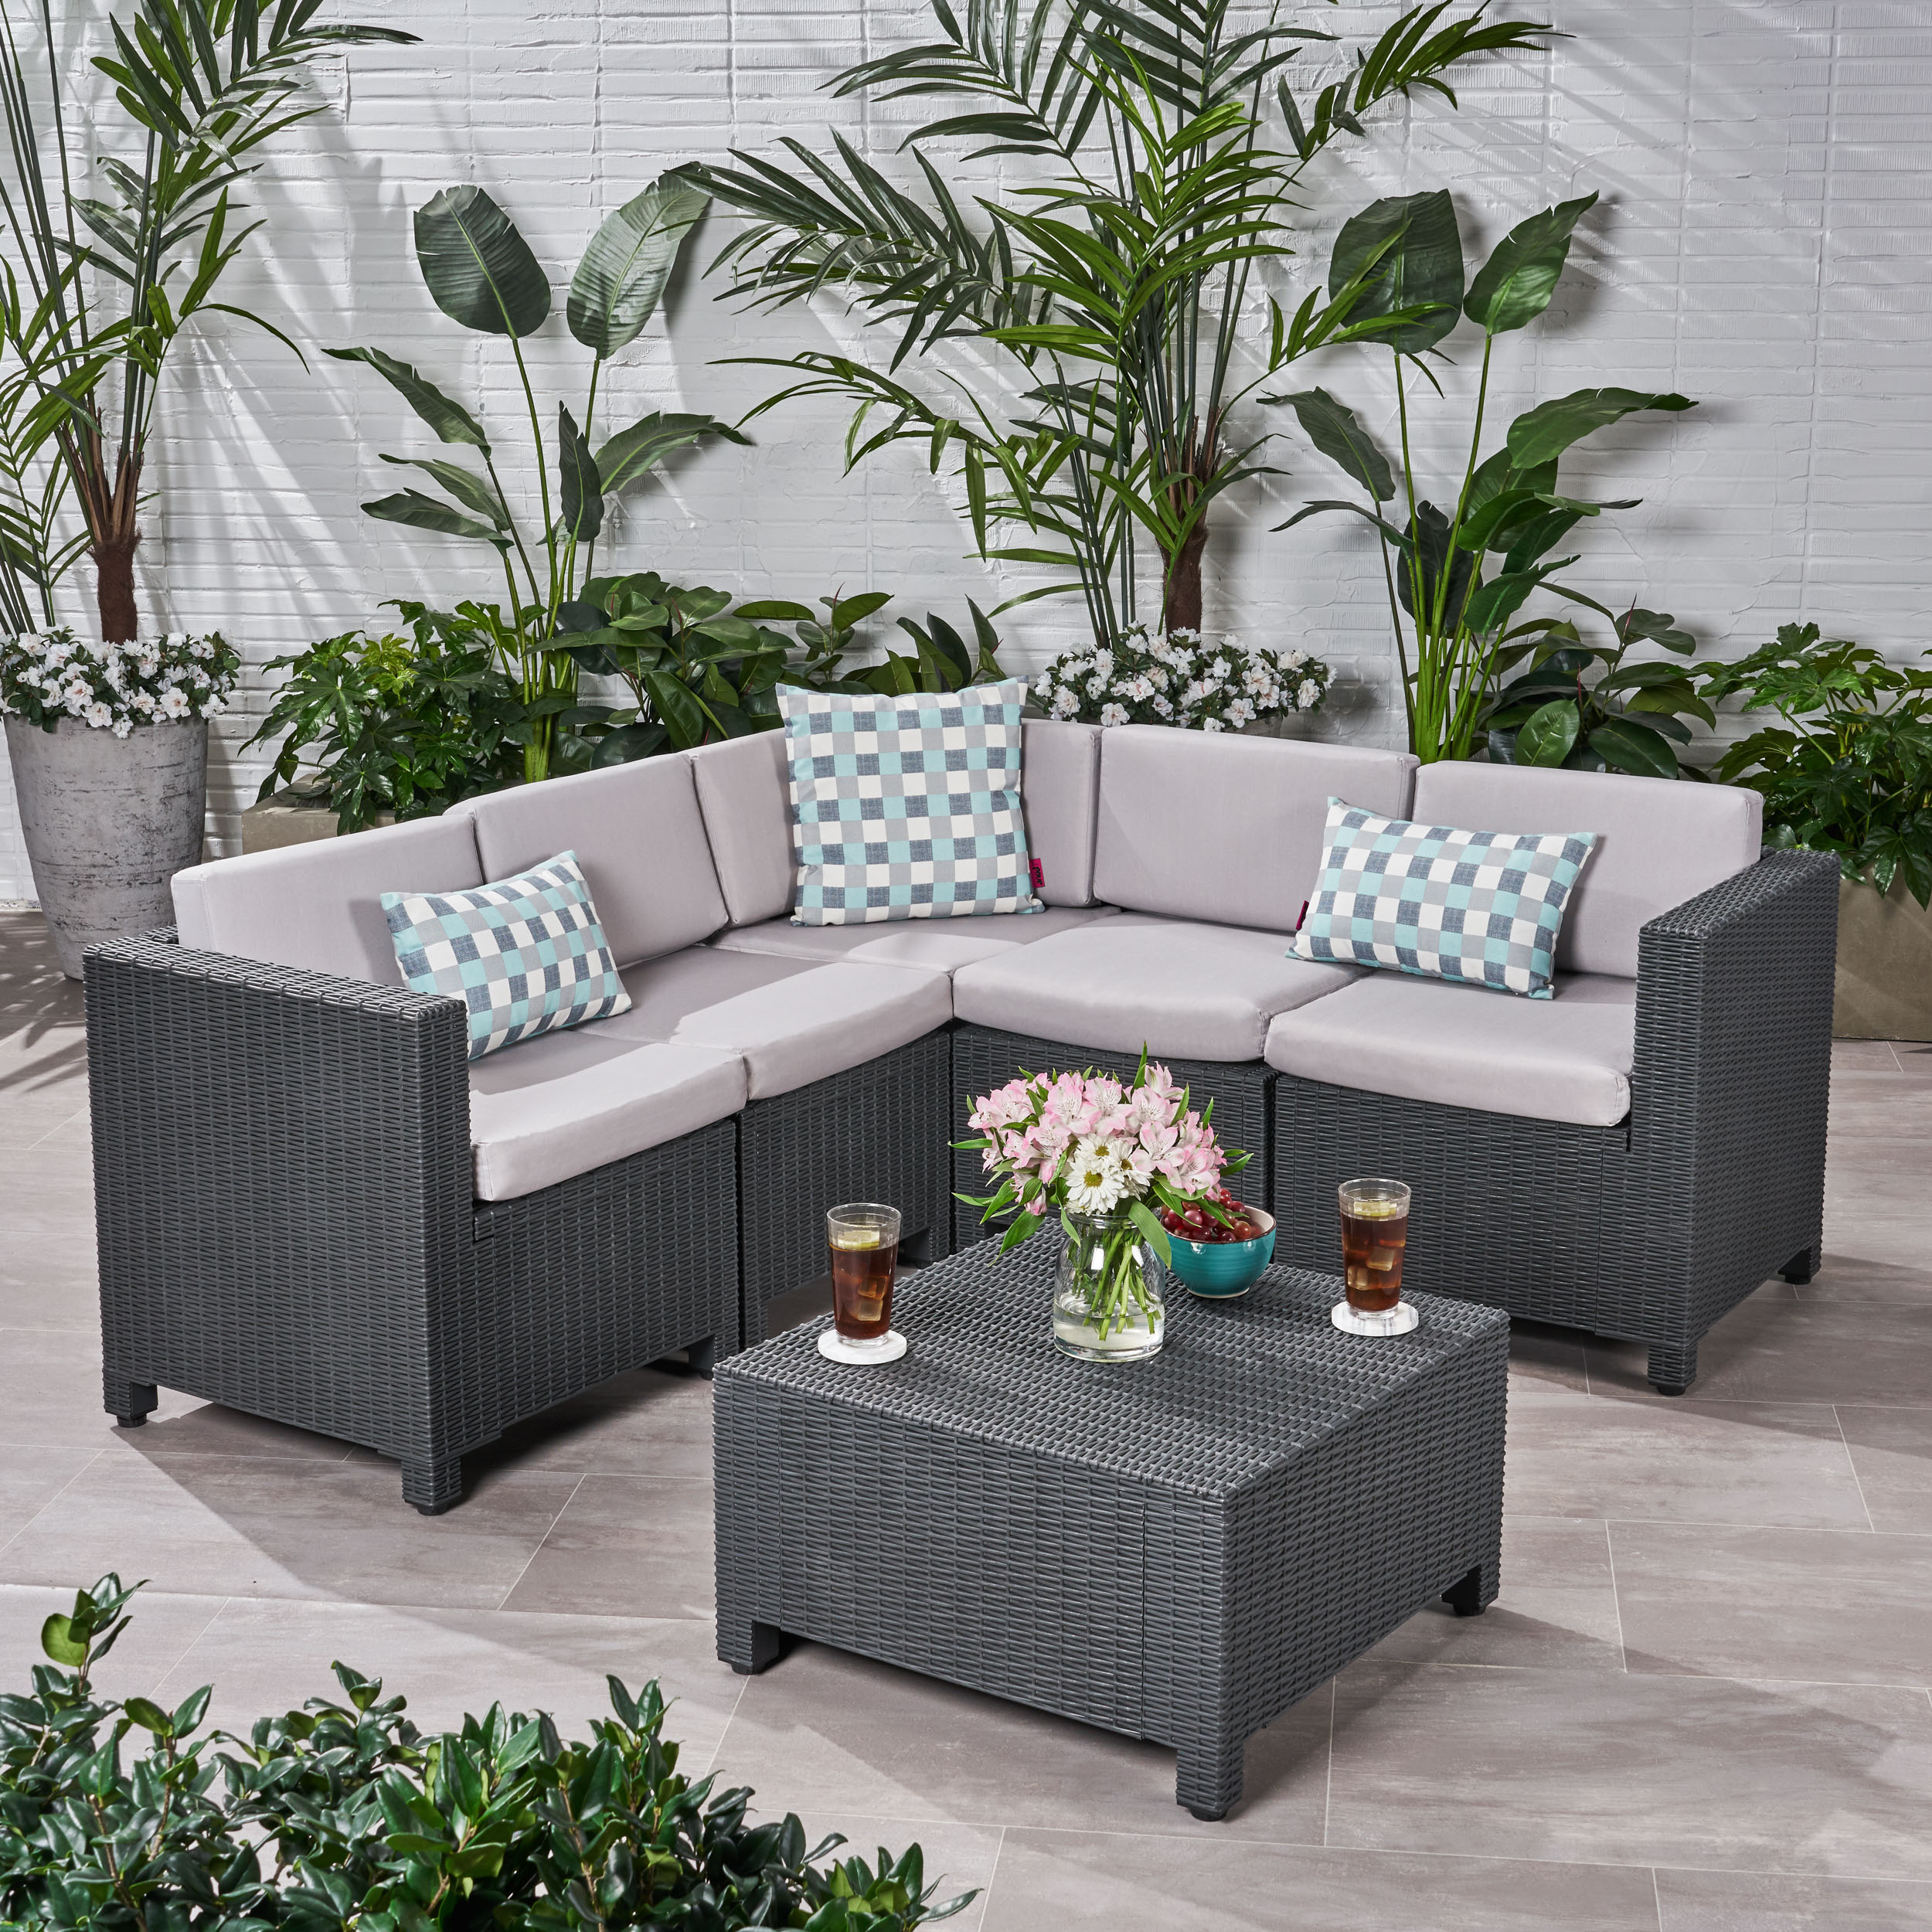 Primrose Outdoor All Weather Faux Wicker 5 Seater ...